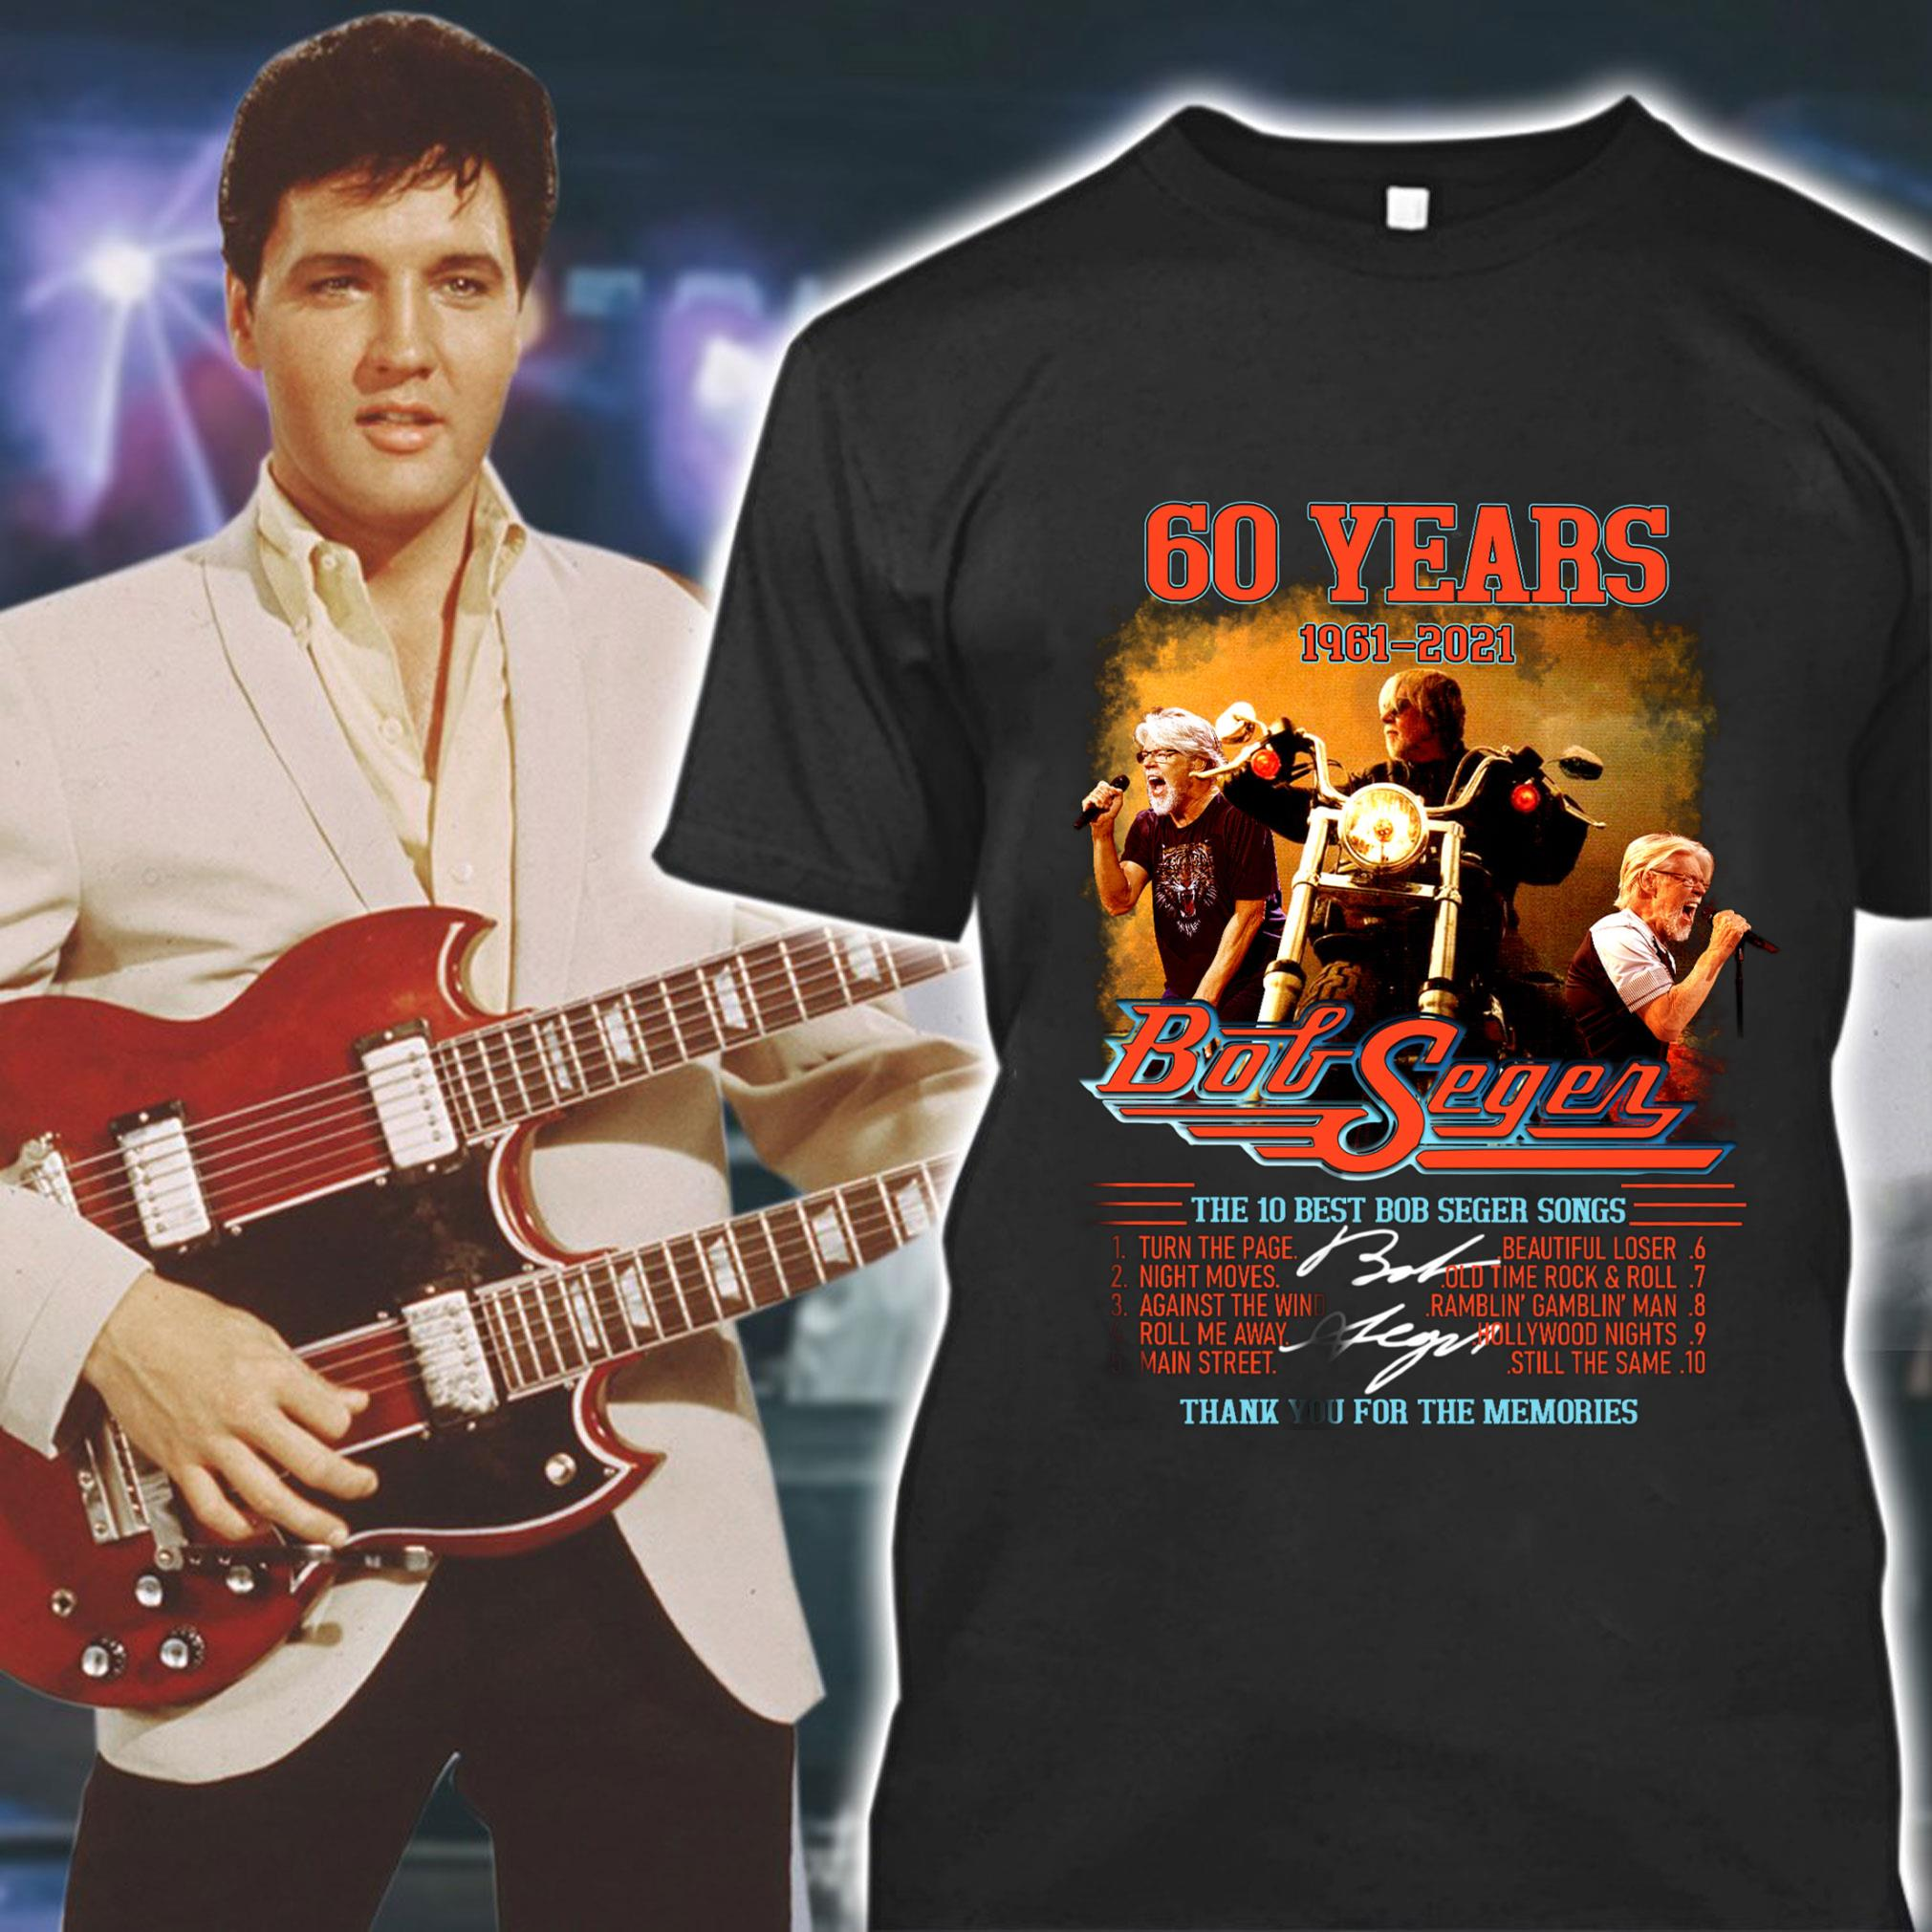 60%20years%201961 2021%20The%2010%20Best%20Bob%20Seger%20Songs%20Thank%20You%20For%20The%20Memories%20Shirt hoodieN9k141810T4POST - 60 years 1961-2021 The 10 Best Bob Seger Songs Thank You For The Memories Shirt